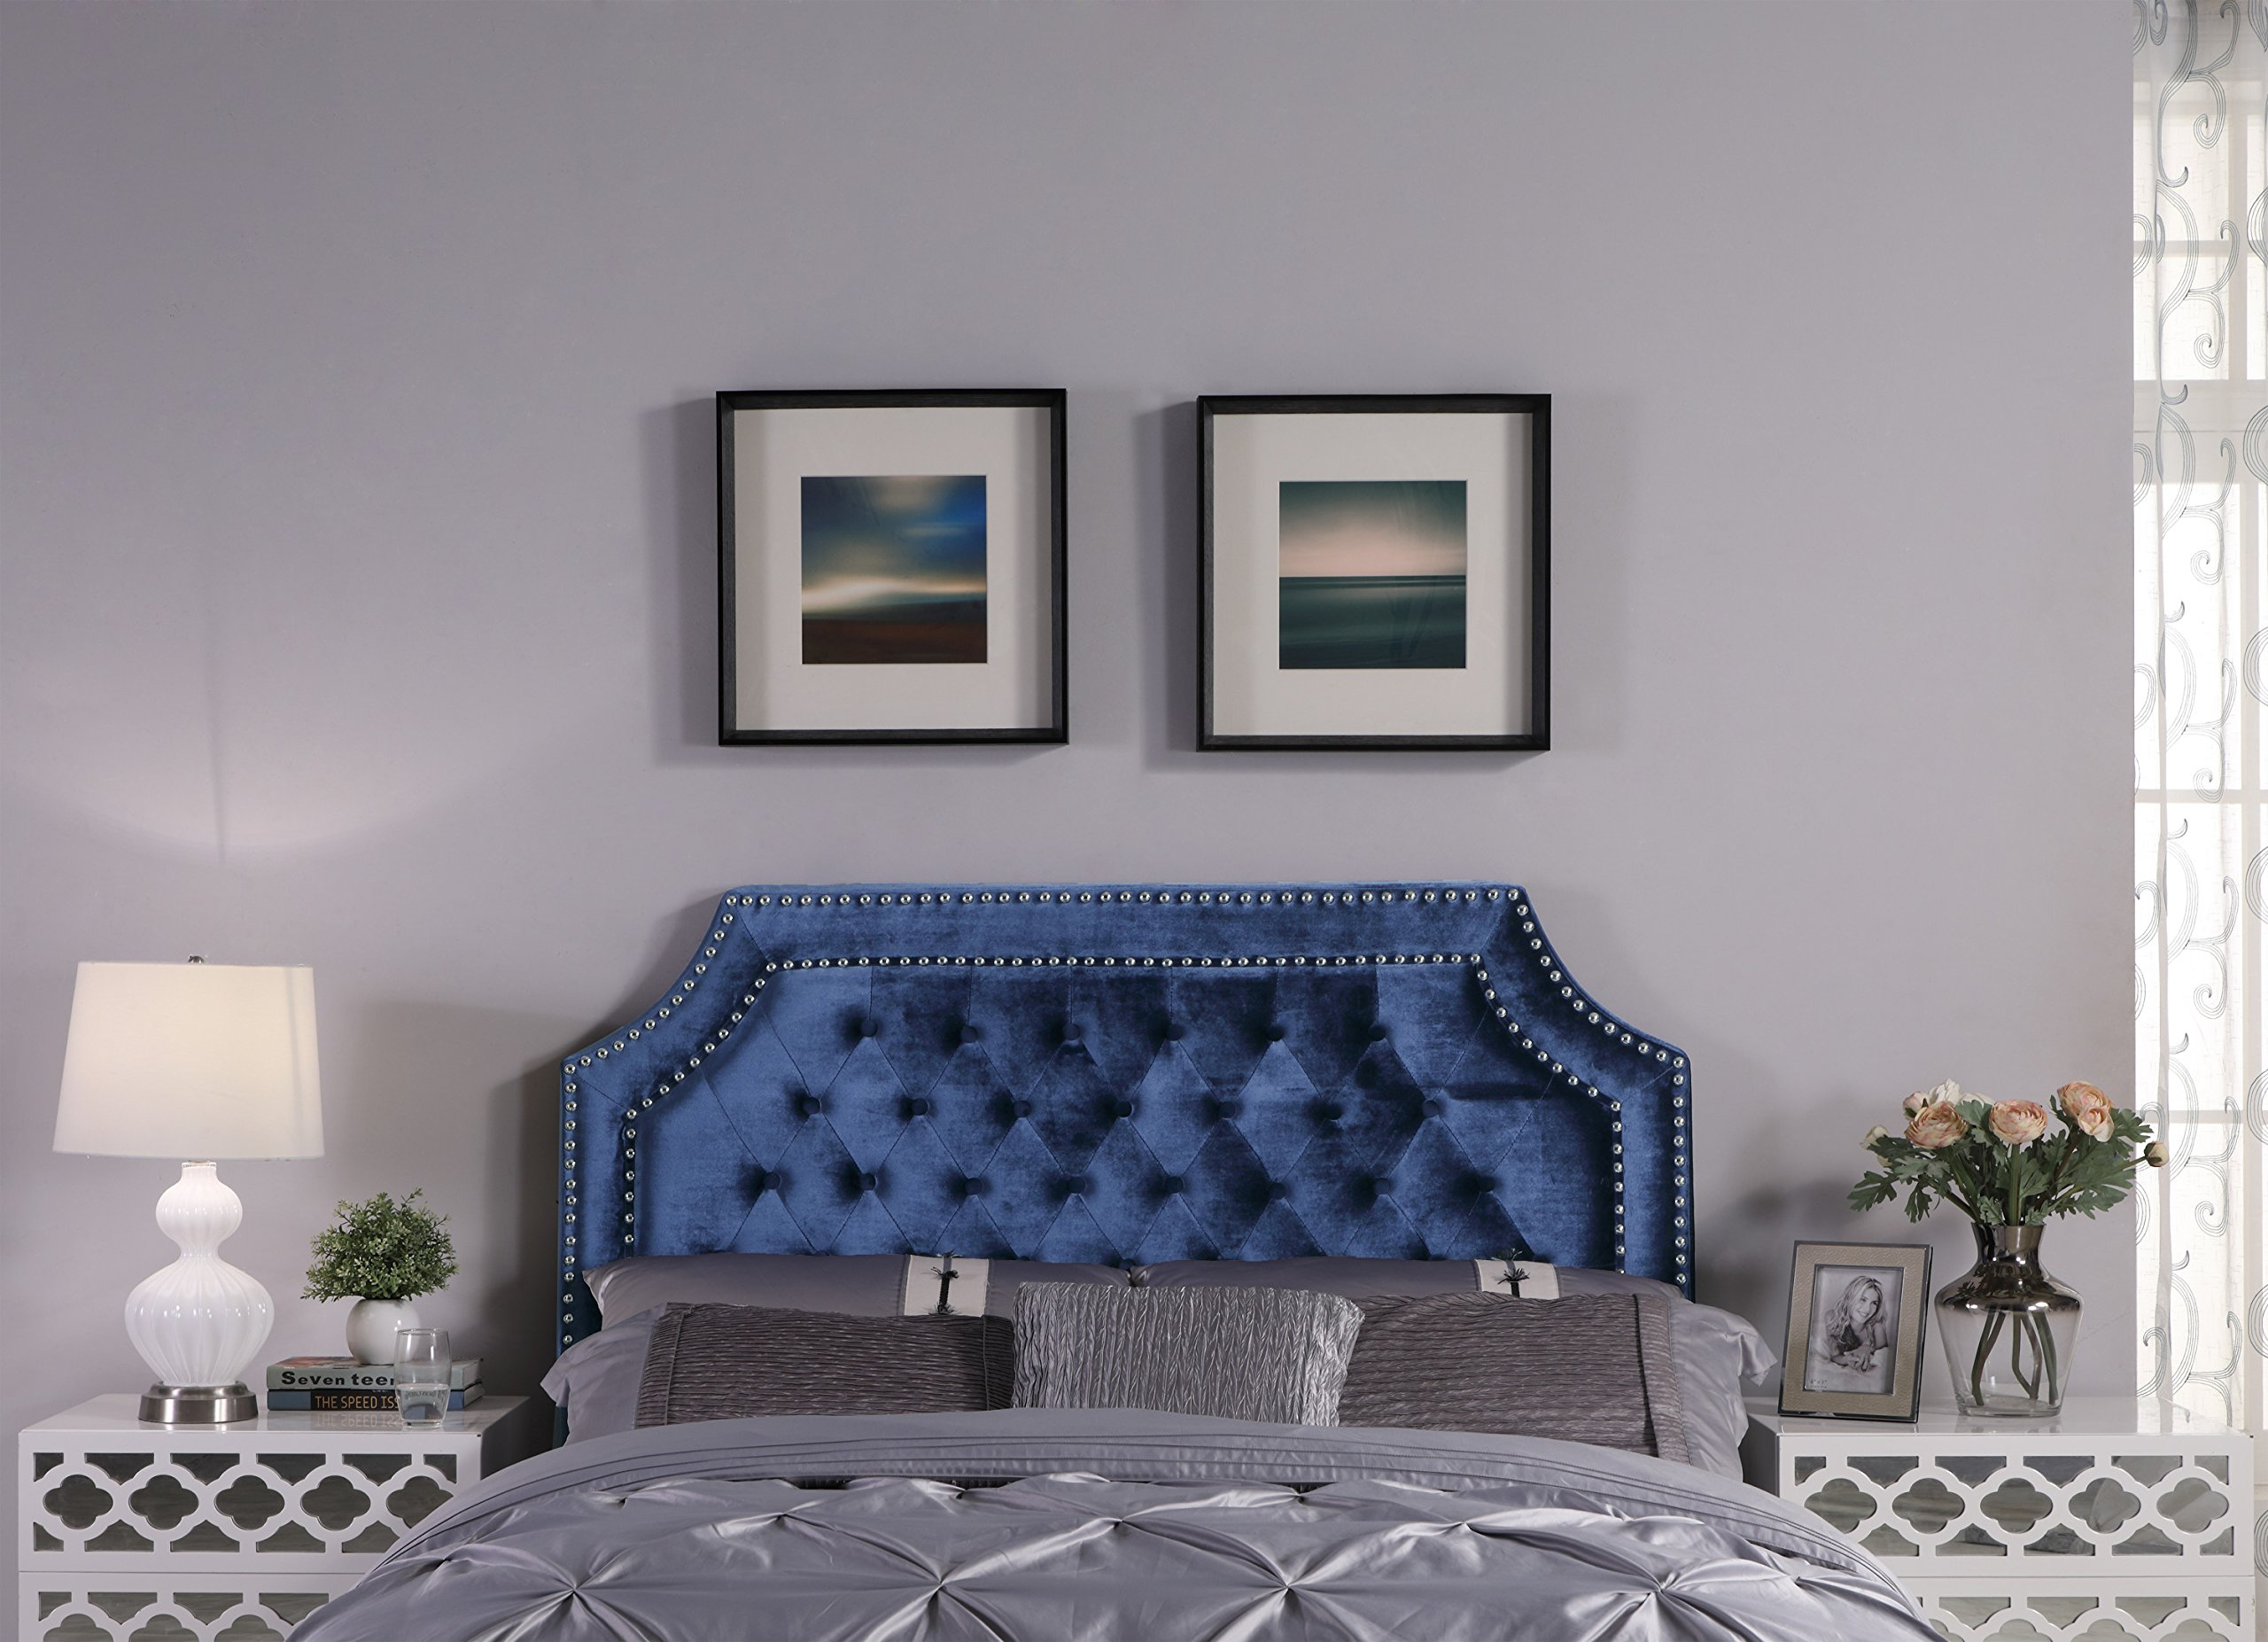 Iconic Home FHB9012-AN Chava Headboard Velvet Upholstered Button Tufted Double Row Silver Nailhead Trim Modern Transitional, King, Navy by Iconic Home